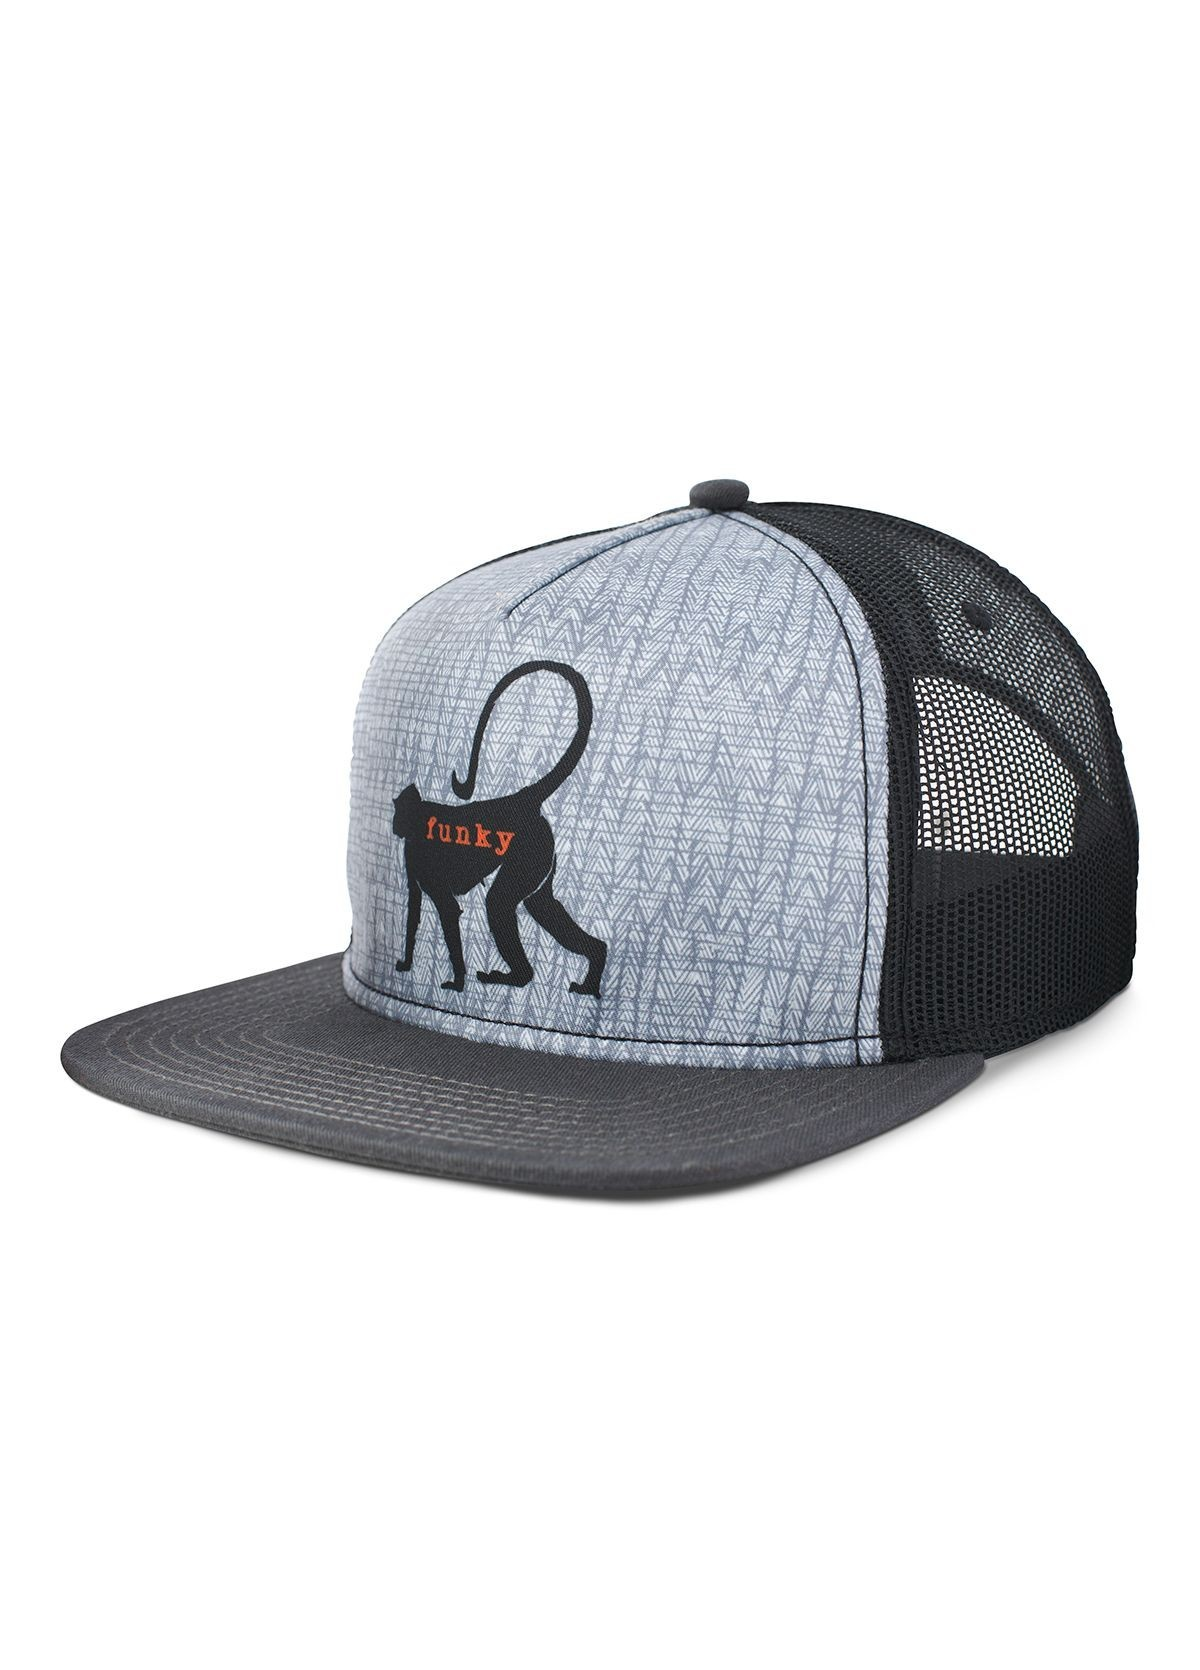 Prana Journeyman Trucker monkey JRIprFM